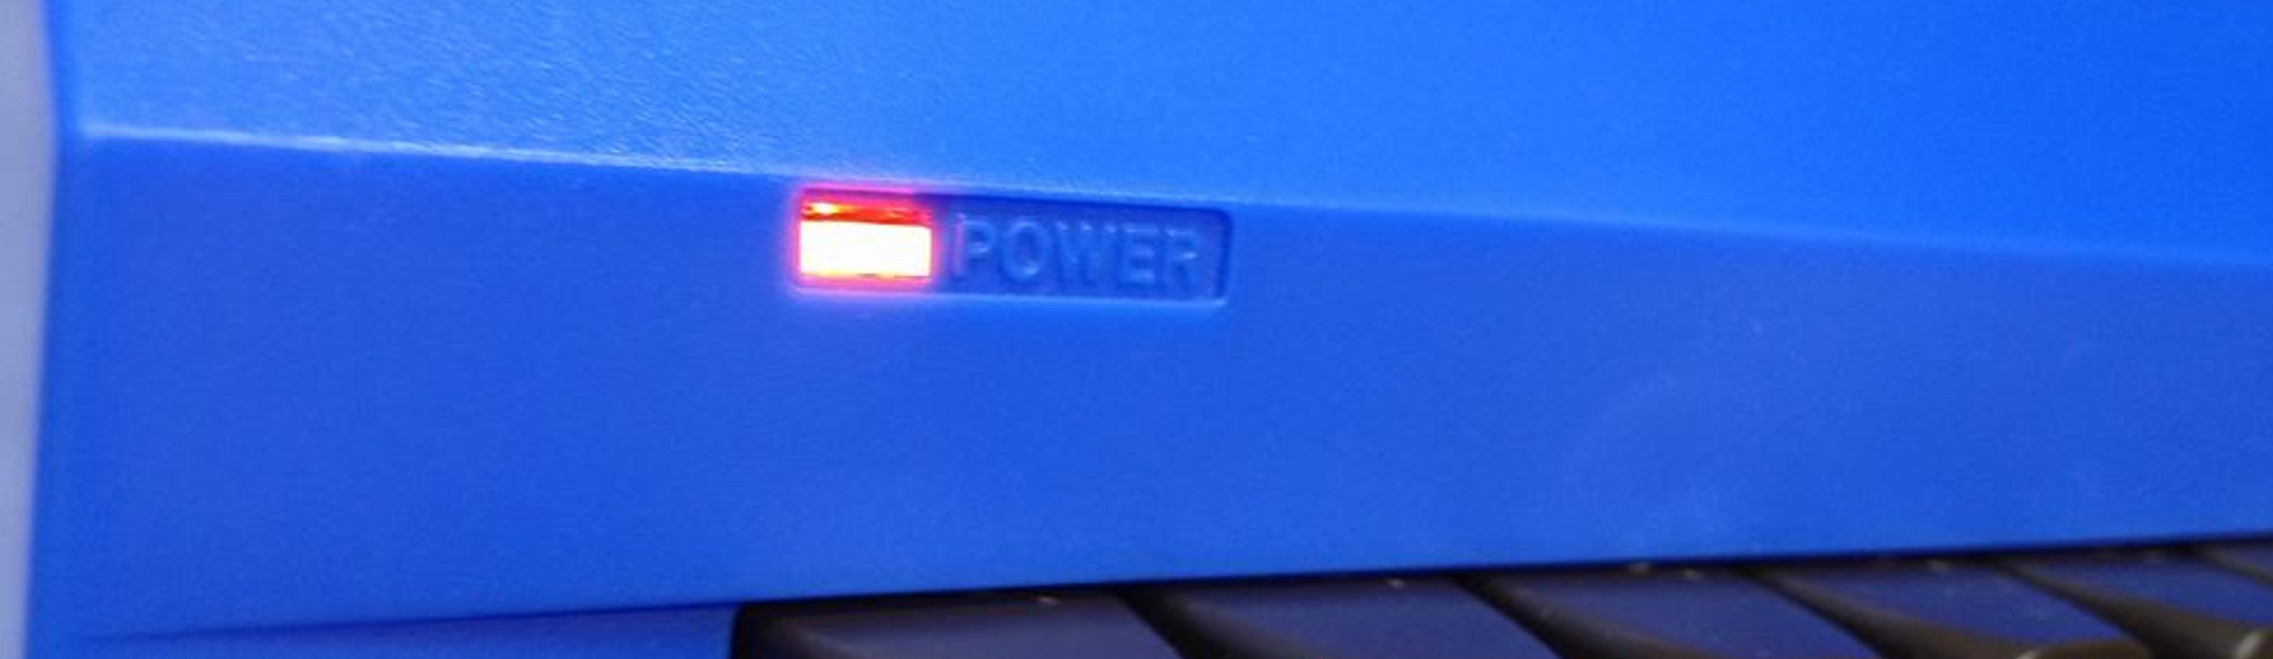 Commodore 64 power LED modification in order to have different LED colors in the new Kickstarter C64 cases